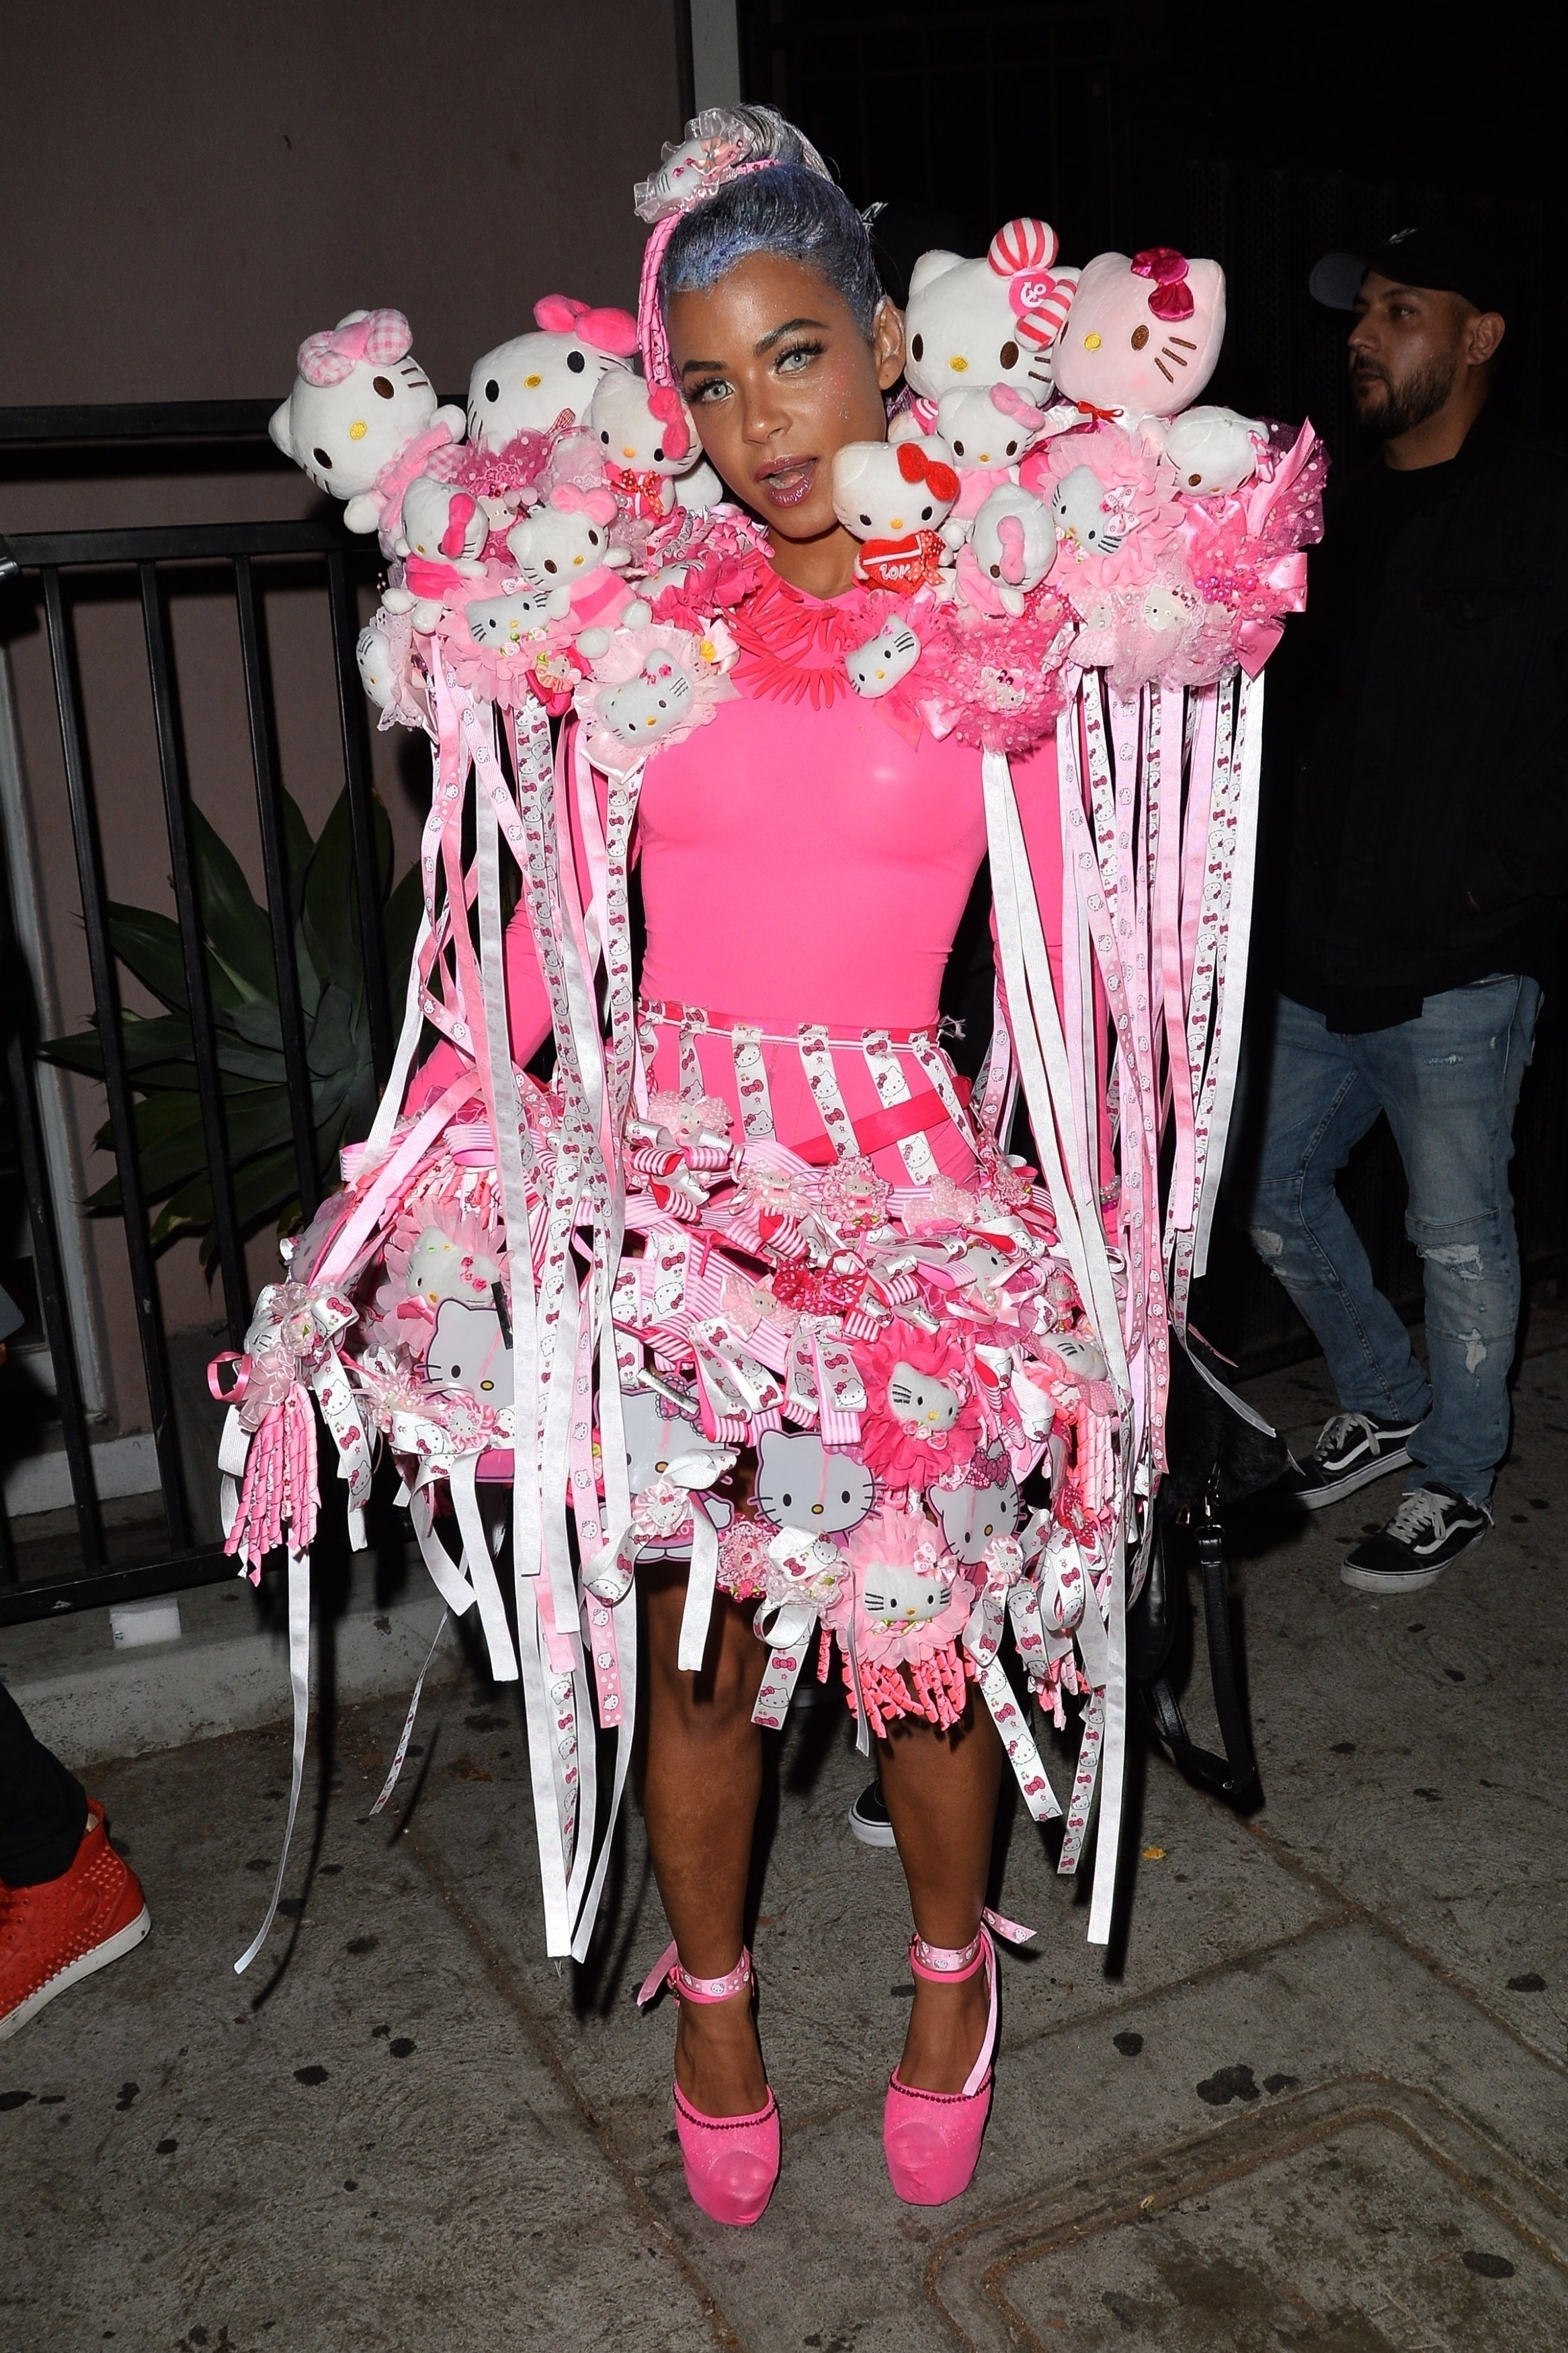 Christina Milian was decked out in Hello Kitty gear at the Galore Magazine party in West Hollywood, California, on Oct. 30, 2018.